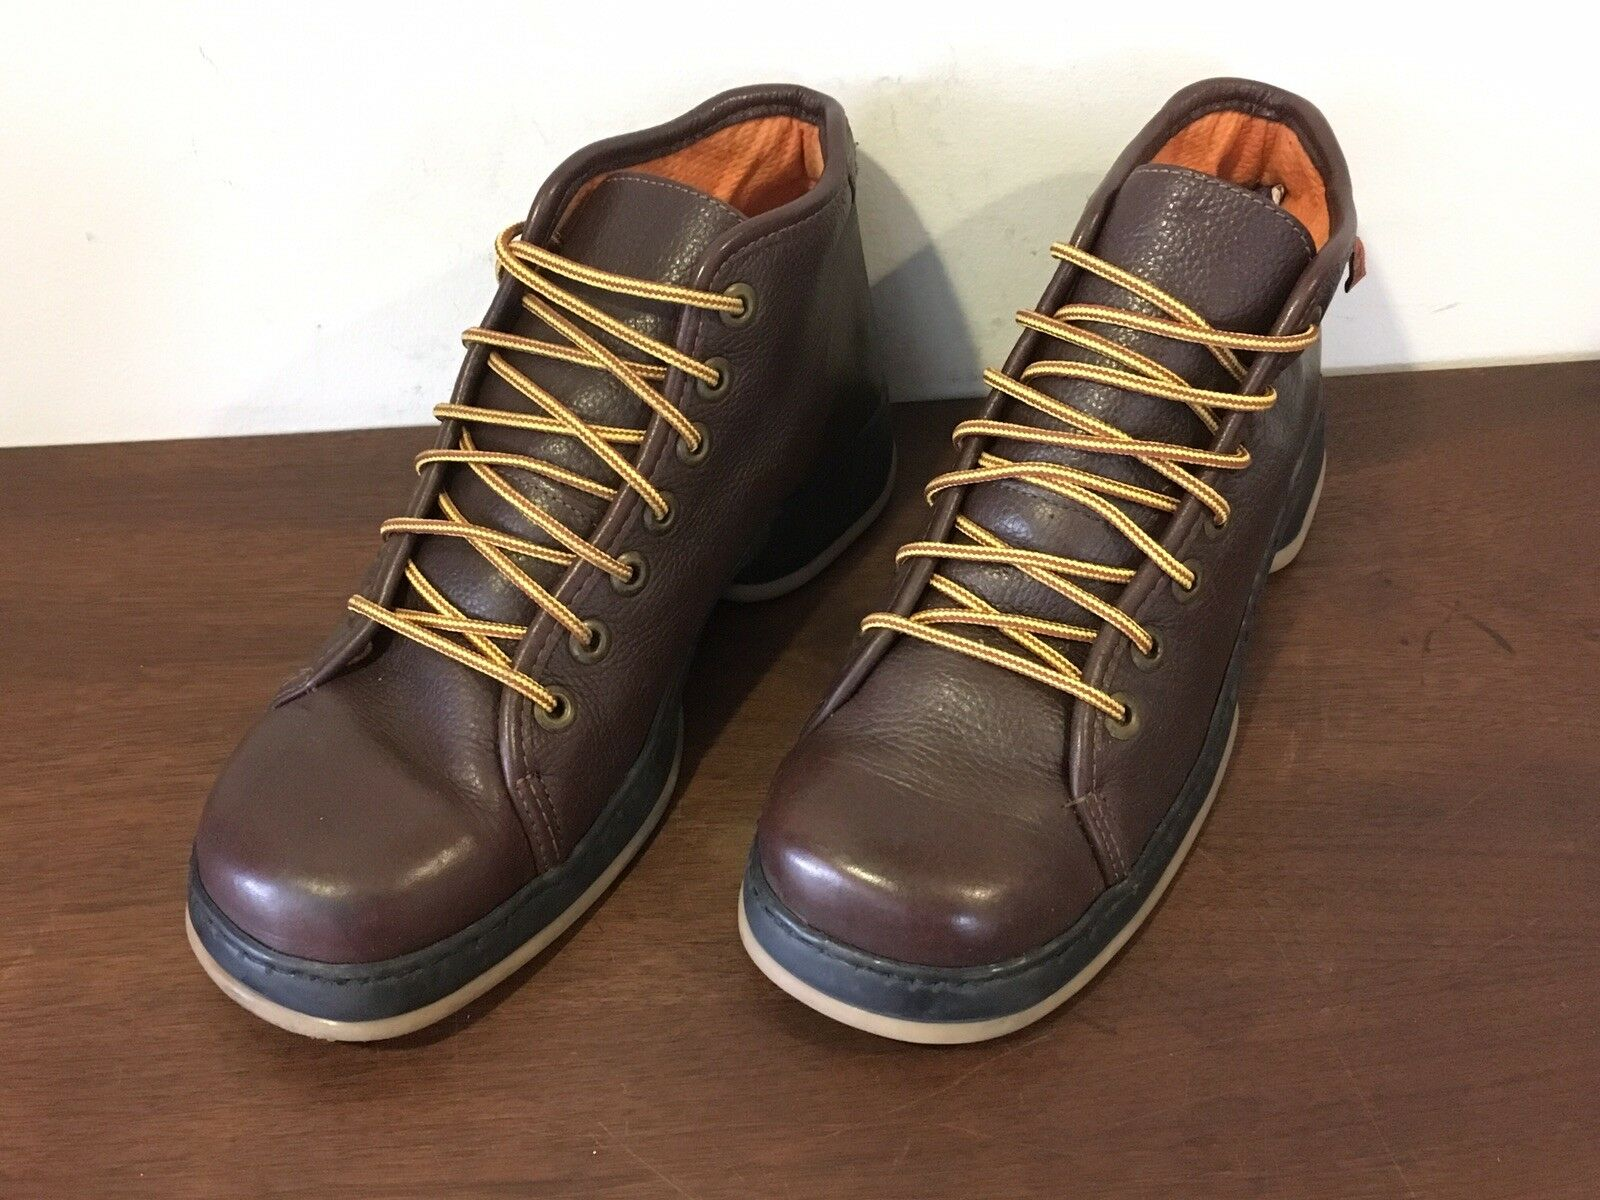 Mag Brown Women's Chukka Boots Sz. 41 Or 9.5